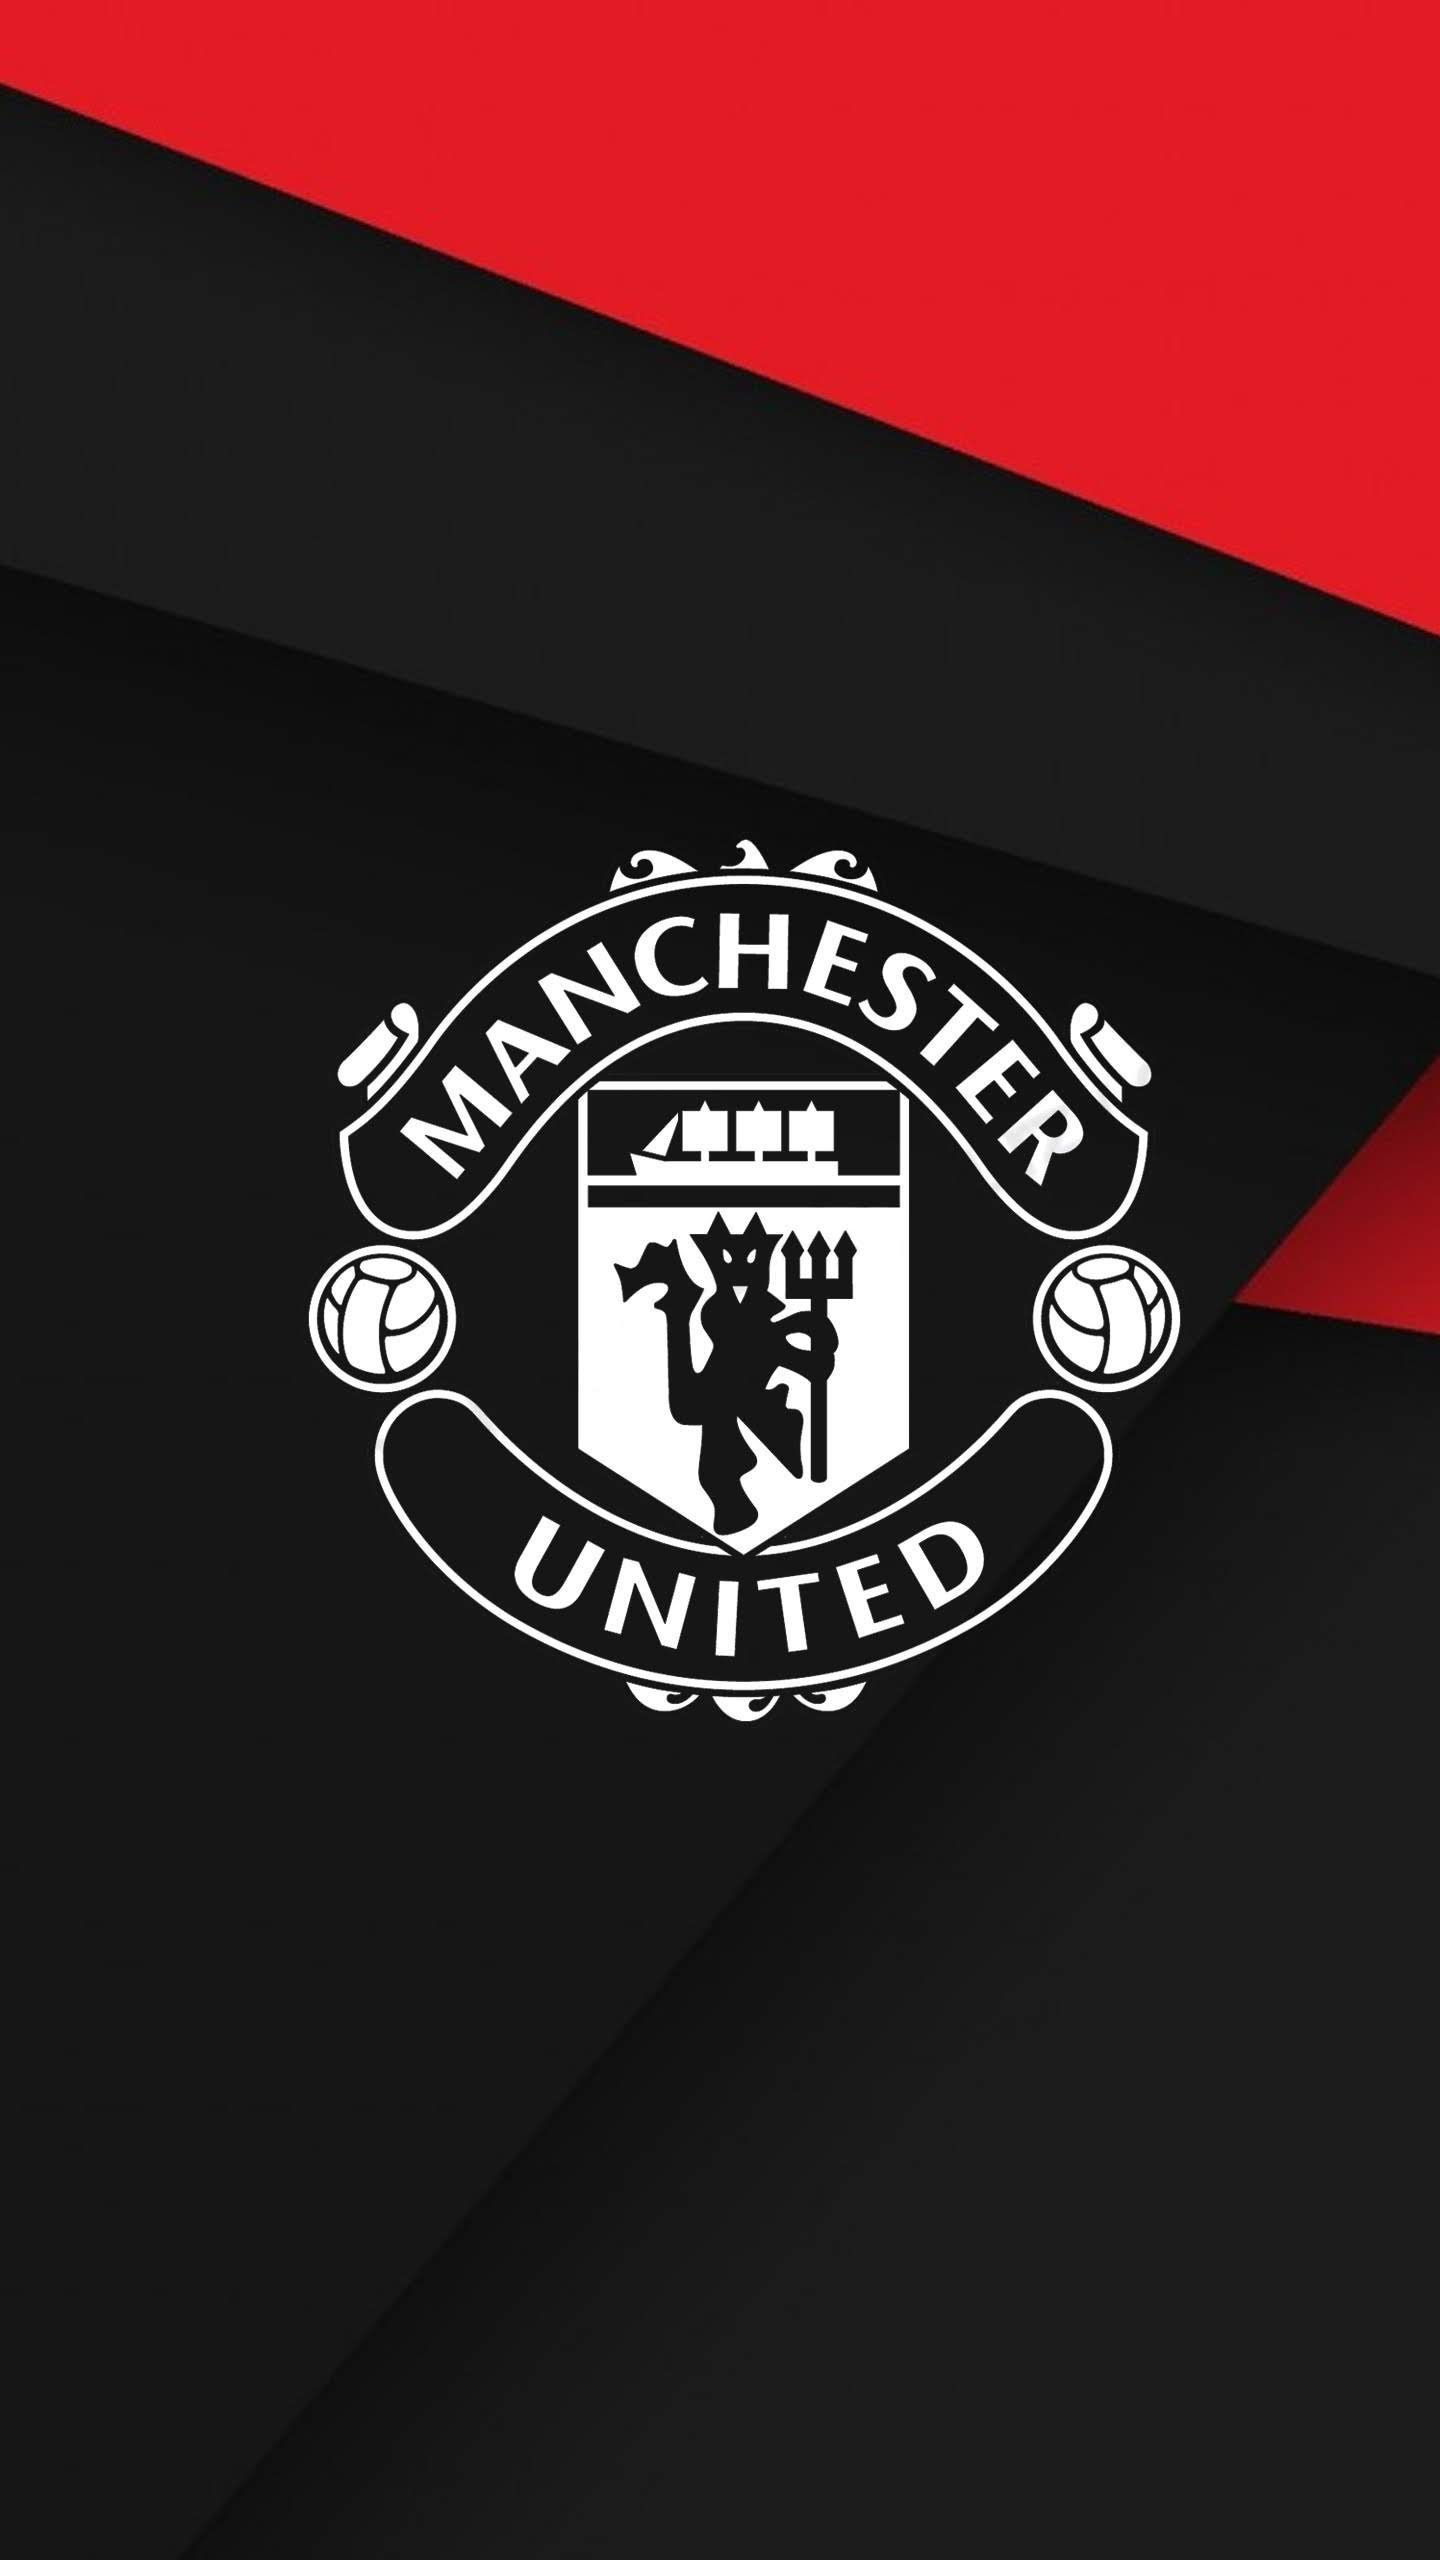 Most Latest Manchester United Wallpapers Daniel James Hình nền Manchester United - HD | Chủ đề Bóng Đá | Laginate - Hình nền Manchester United – HD | Chủ đề Bóng Đá | Laginate    Hình nền Manchester United – HD | Chủ đề Bóng Đá | Laginate